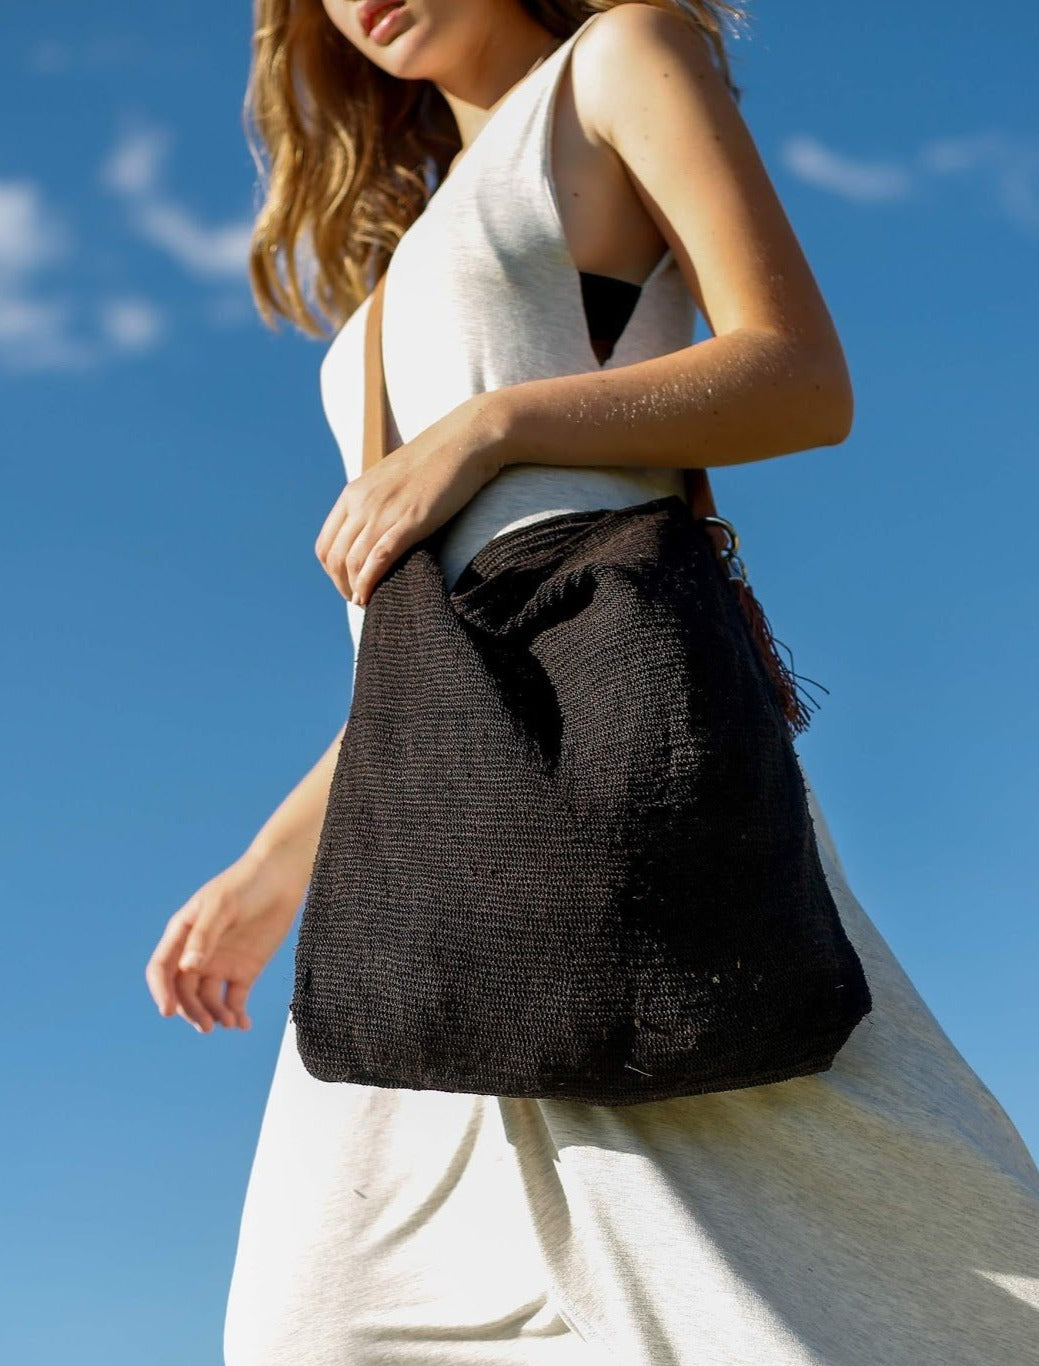 Close up of Woman holding Black Chaguar Purse with Brown Leather Strap.